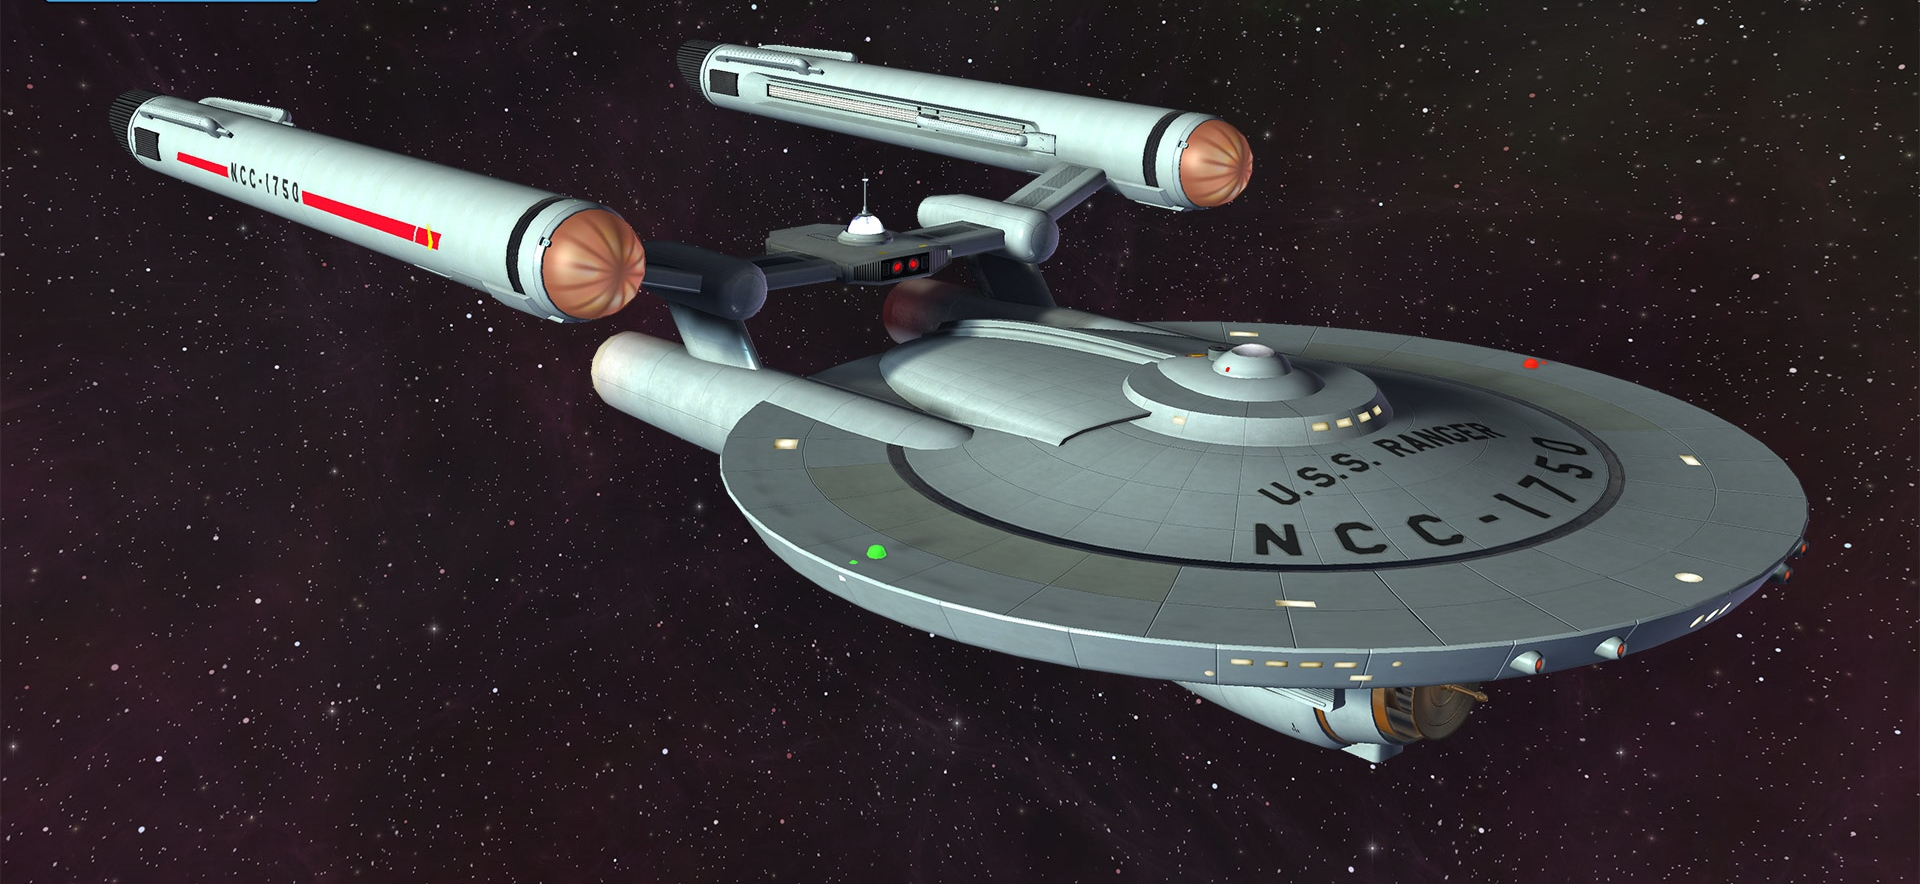 343892121538138468 together with Index php furthermore Ships Of The Fleet together with Star Trek Quadrants Alpha Quadrant also David Henrys Dauntless Class. on star trek federation klingon romulan fleet